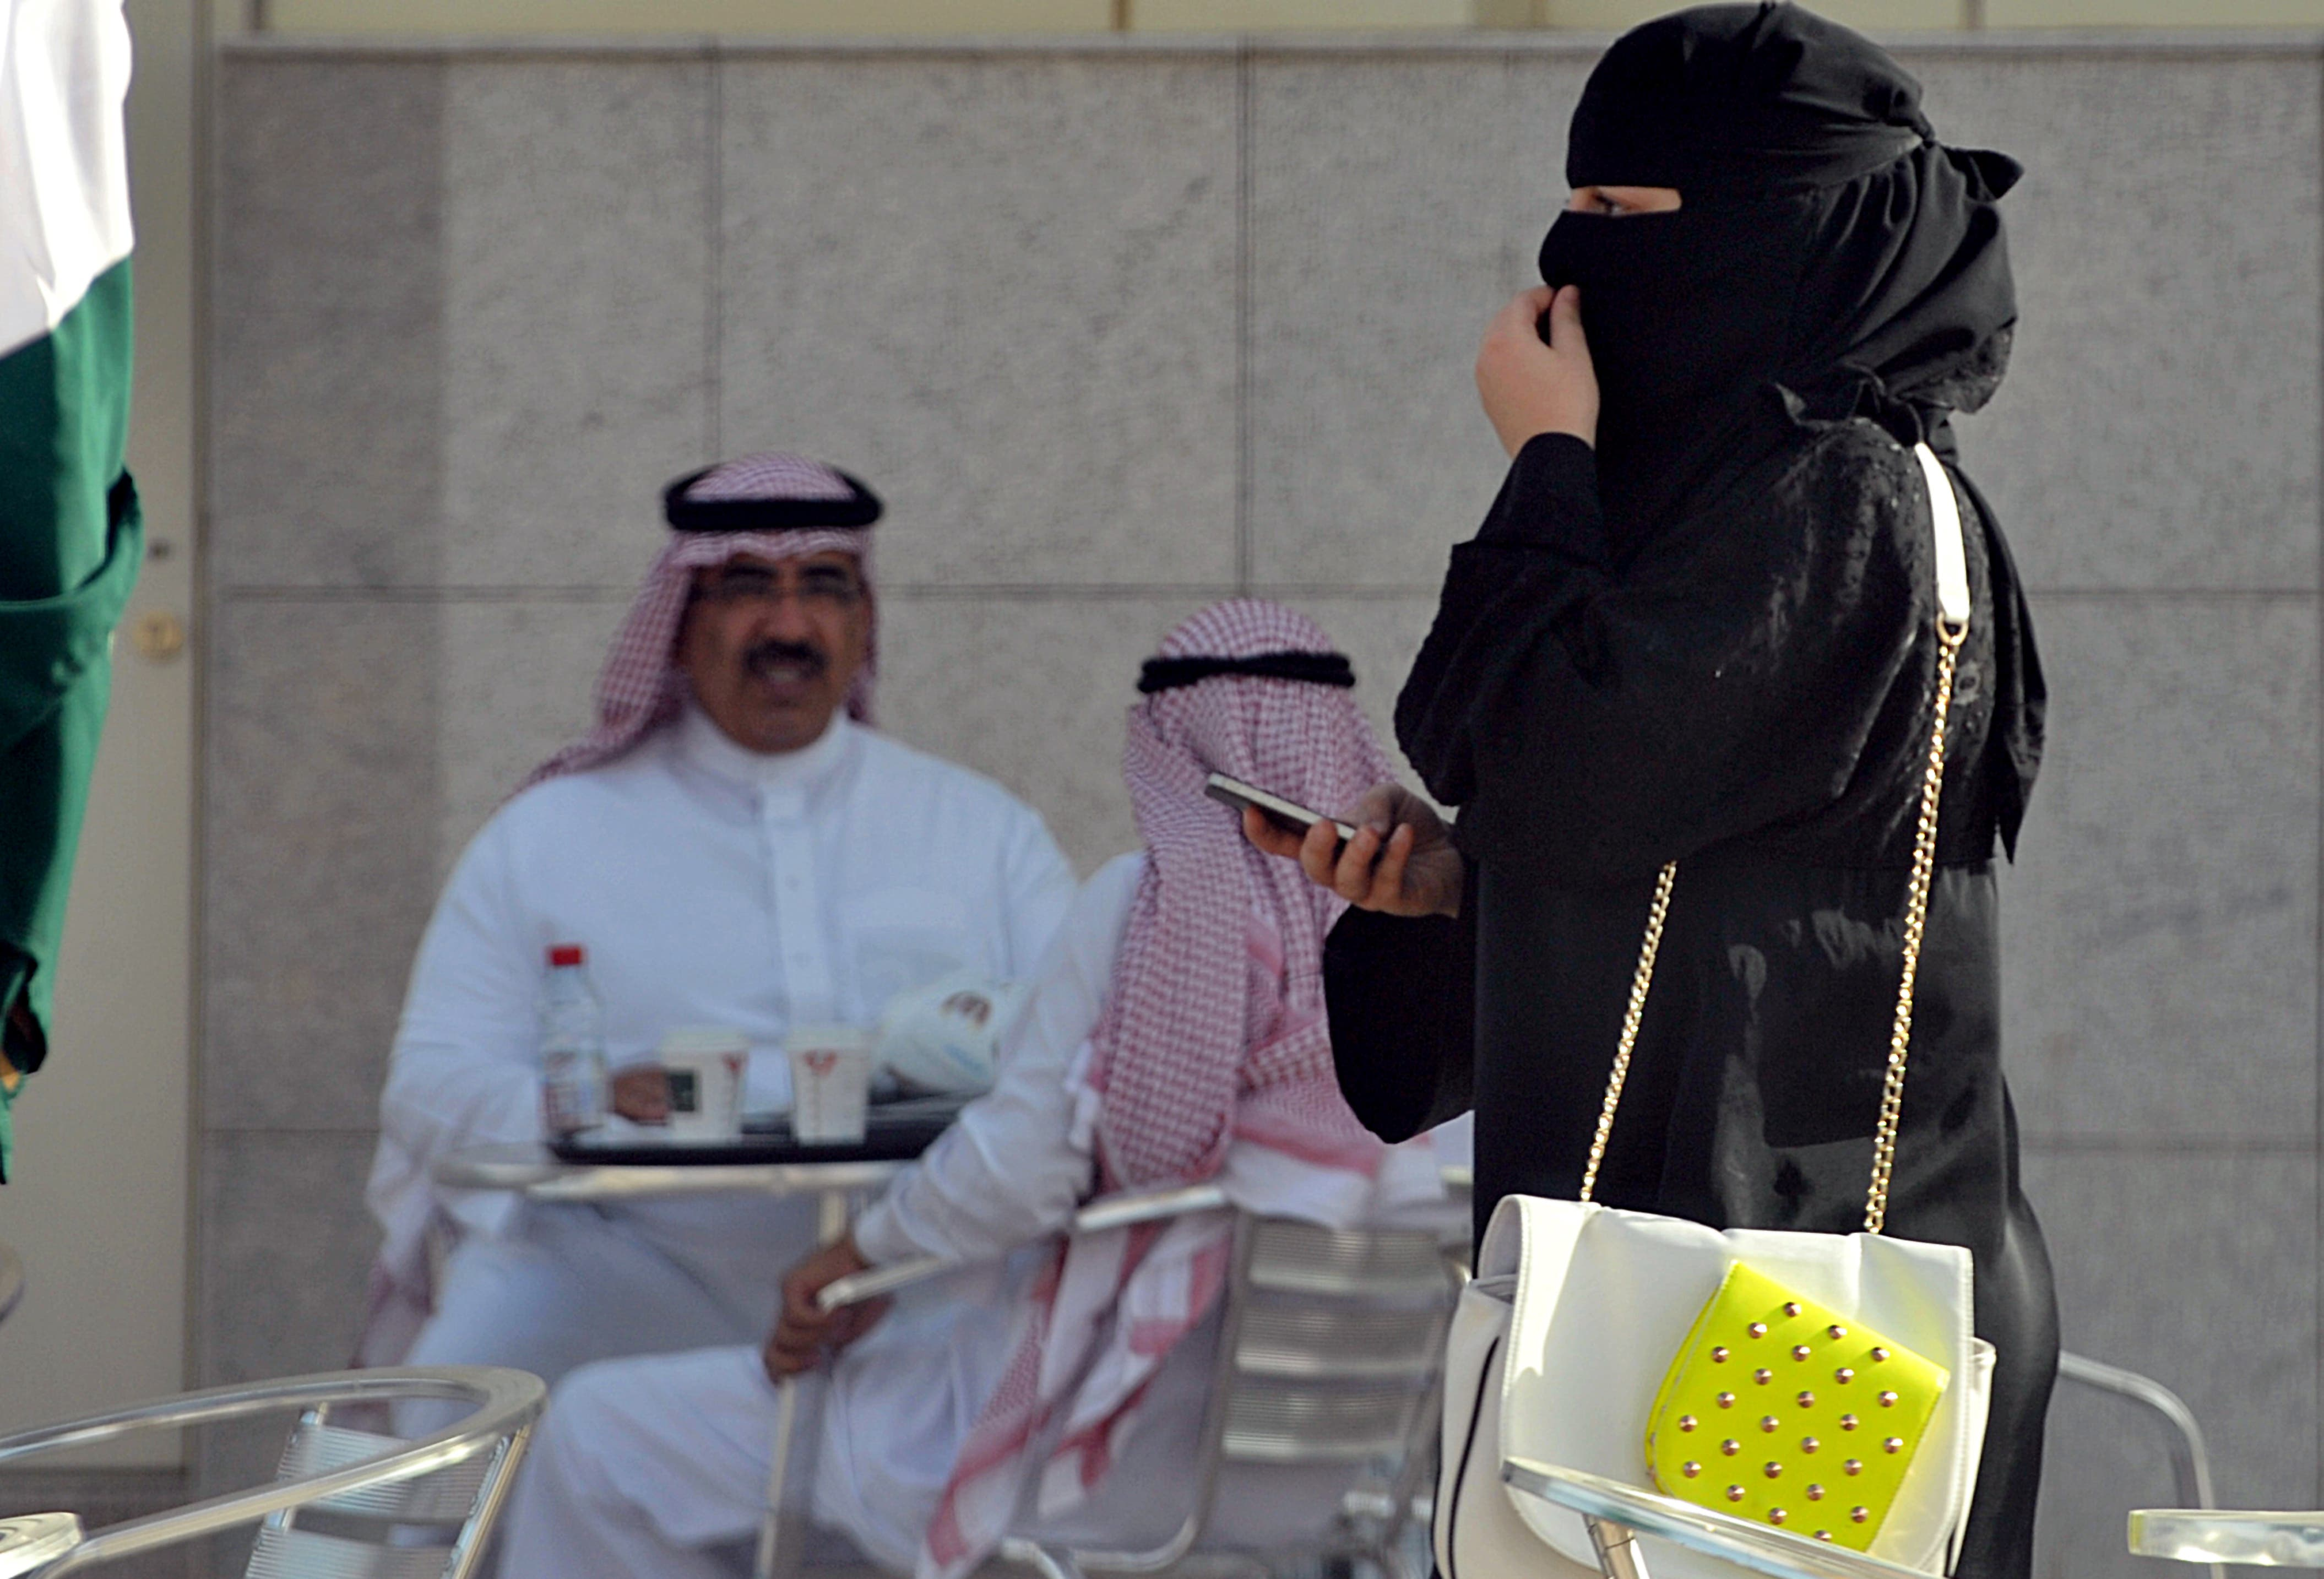 A Saudi woman holds her mobile as she walks through a coffee shop in the capital Riyadh on June 17, 2013. (Source: AFP/ FAYEZ NURELDINE)